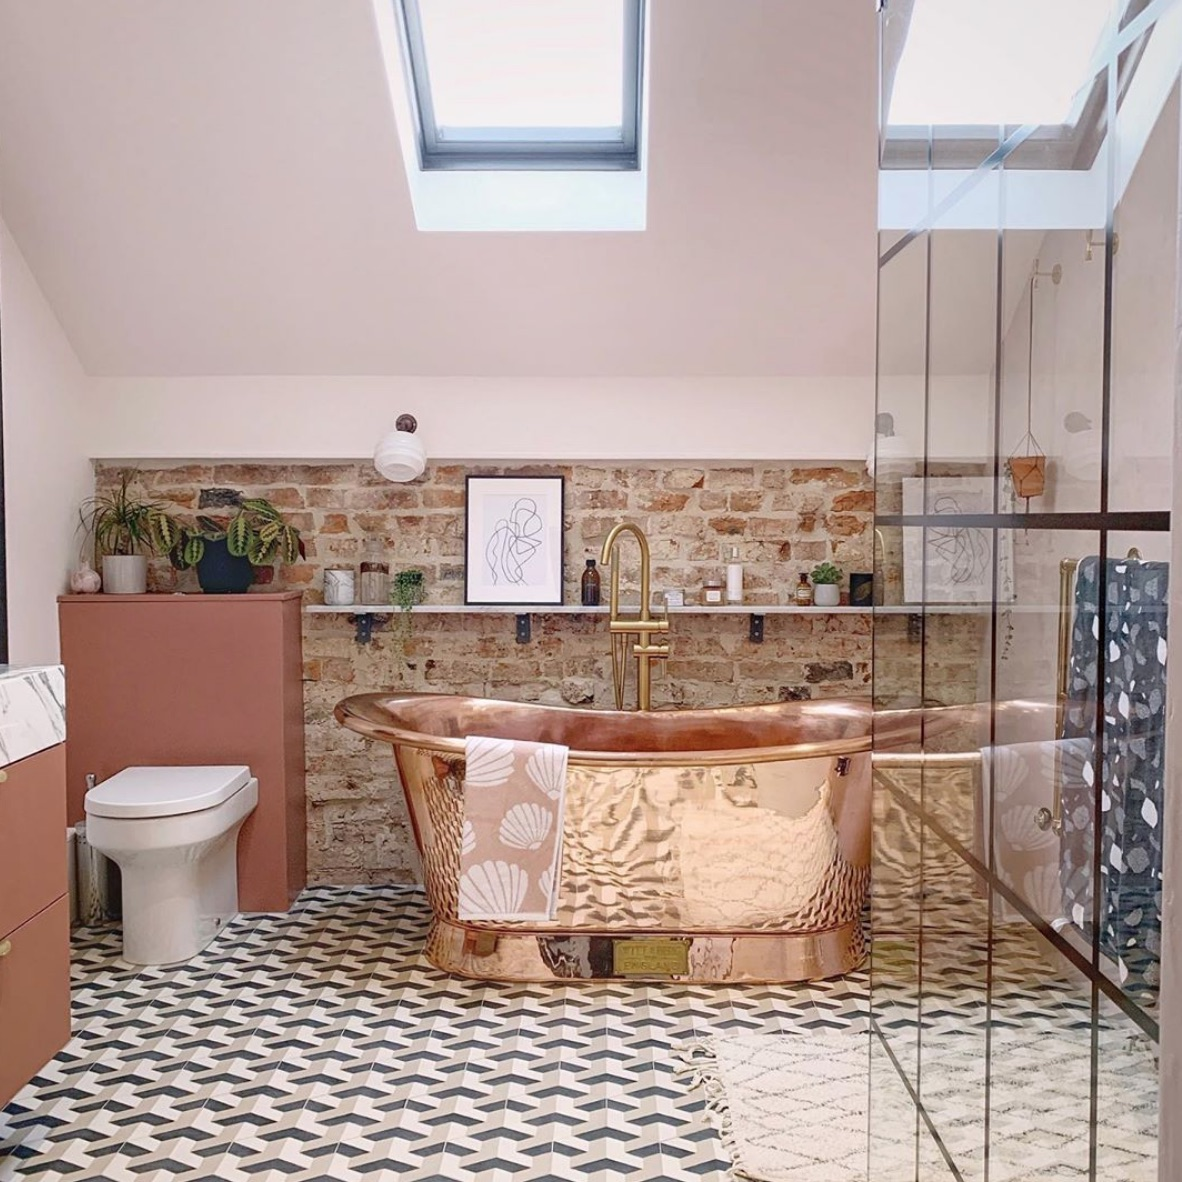 Vintage bathroom with copper bathtub